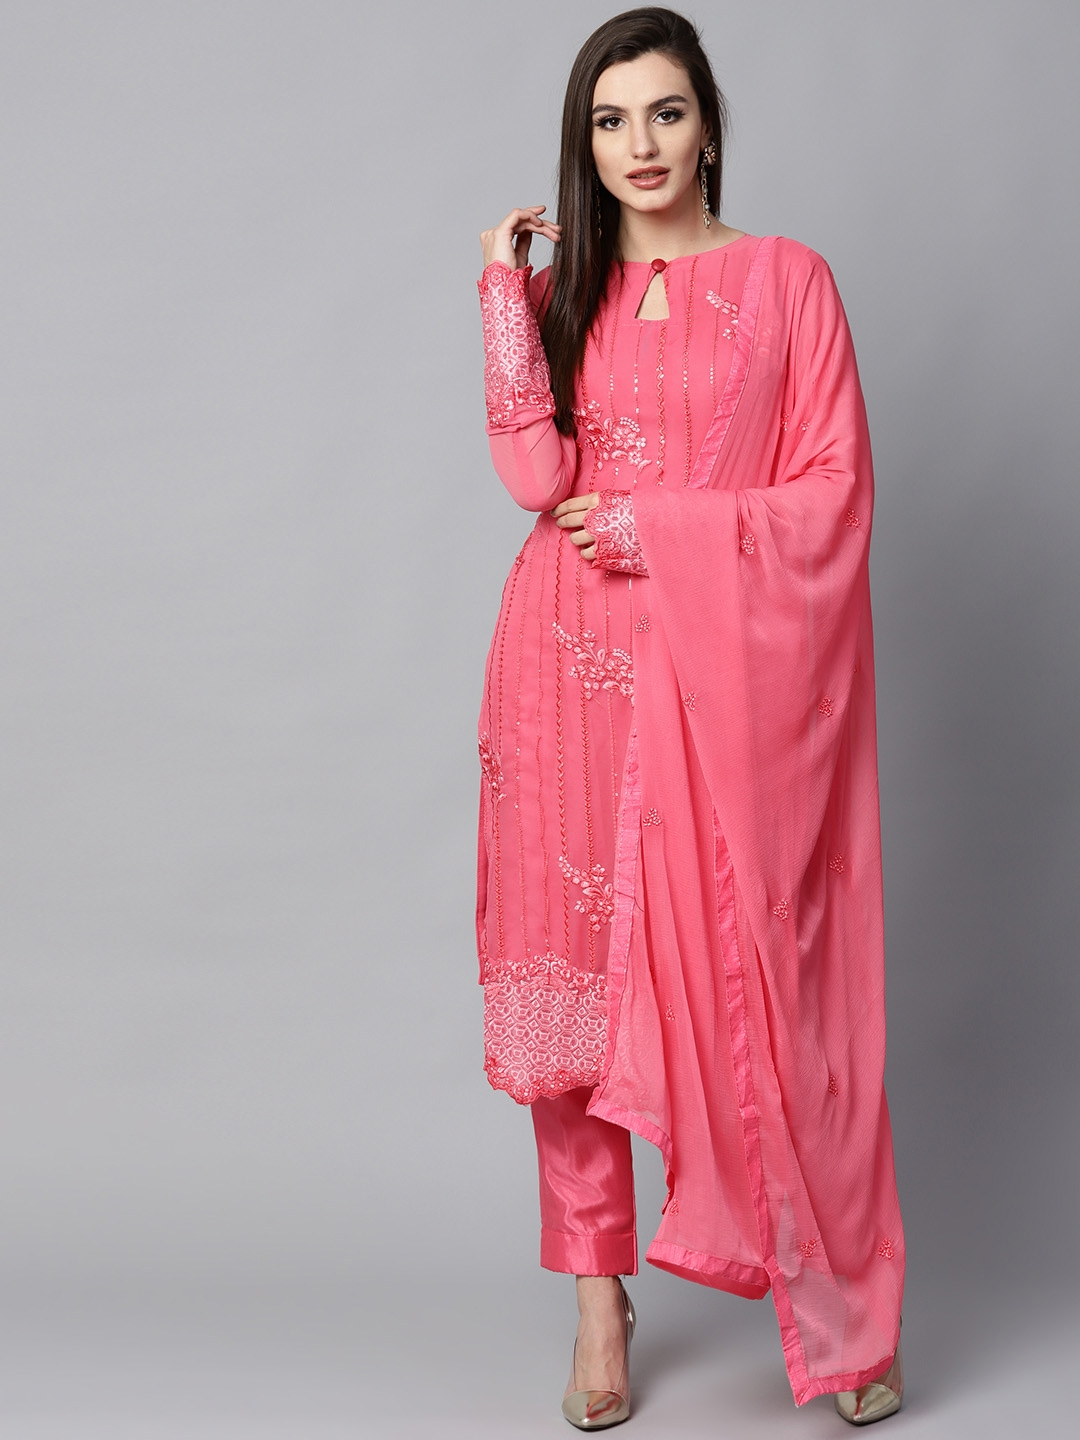 796c77094 Buy Saree Mall Pink Embroidered Semi Stitched Dress Material - Dress ...